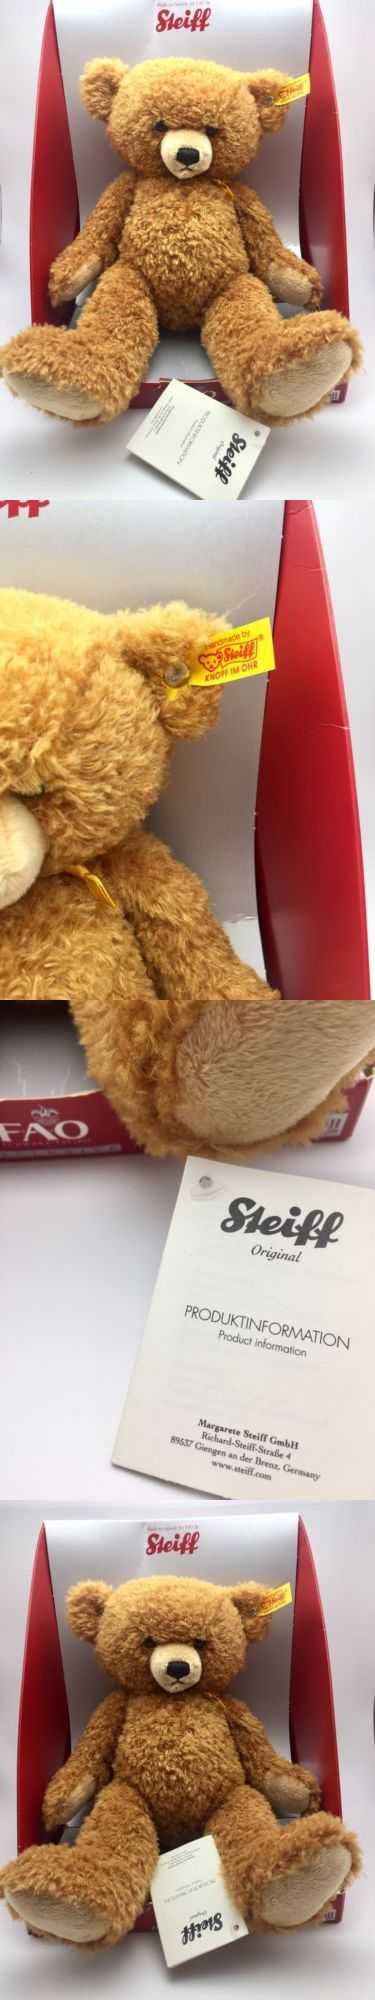 1970-Now 2602: Steiff Fao Schwarz Exclusive Freddy The Teddy Bear Collectible Stuffed Animal -> BUY IT NOW ONLY: $44.99 on eBay!